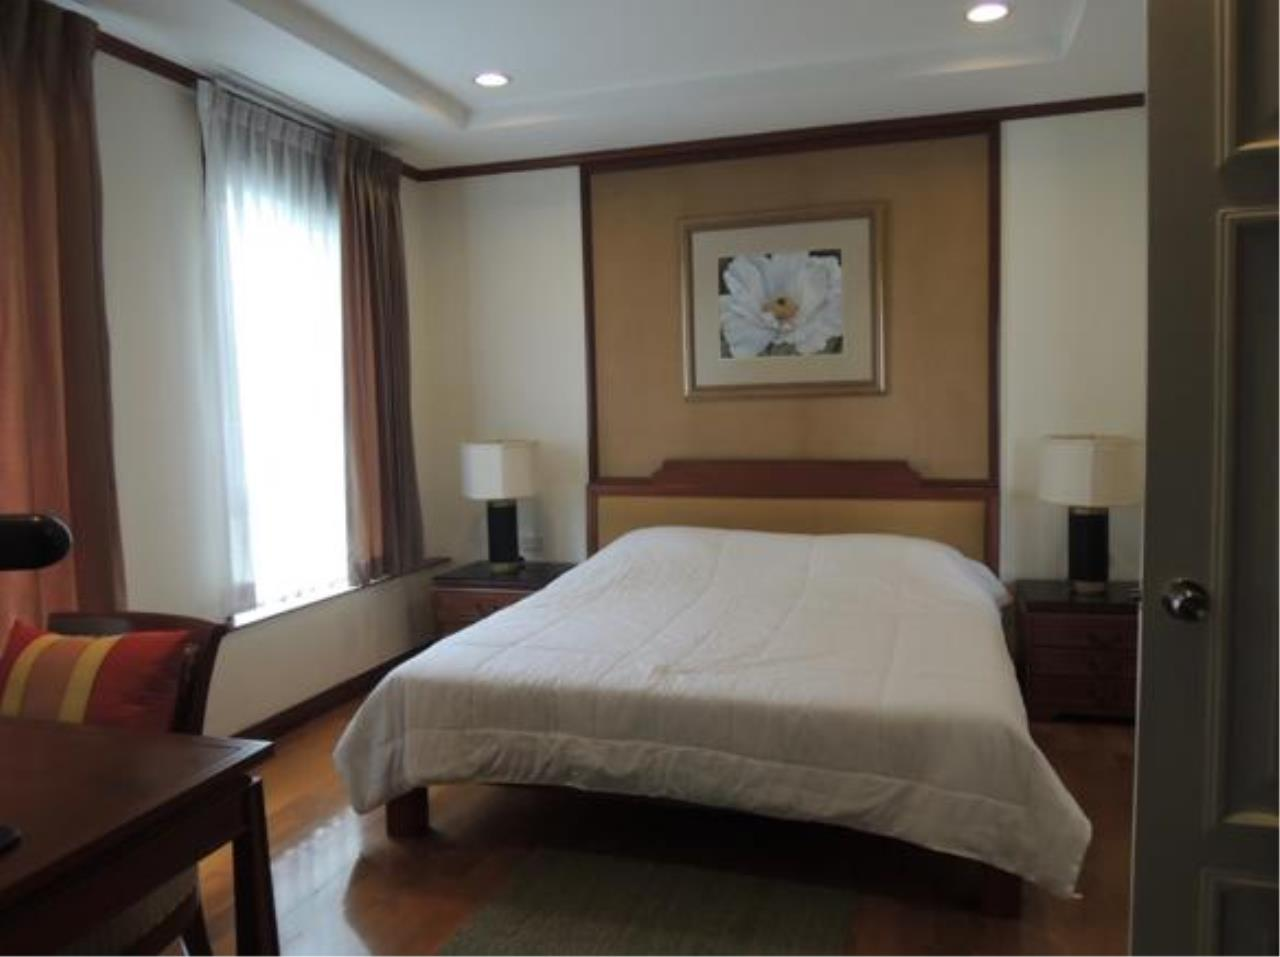 Right Move Thailand Agency's CA4116  For Rent The Bangkok Sukhumvit - 70,000 THB 2 Bedrooms 114 Sqm 10